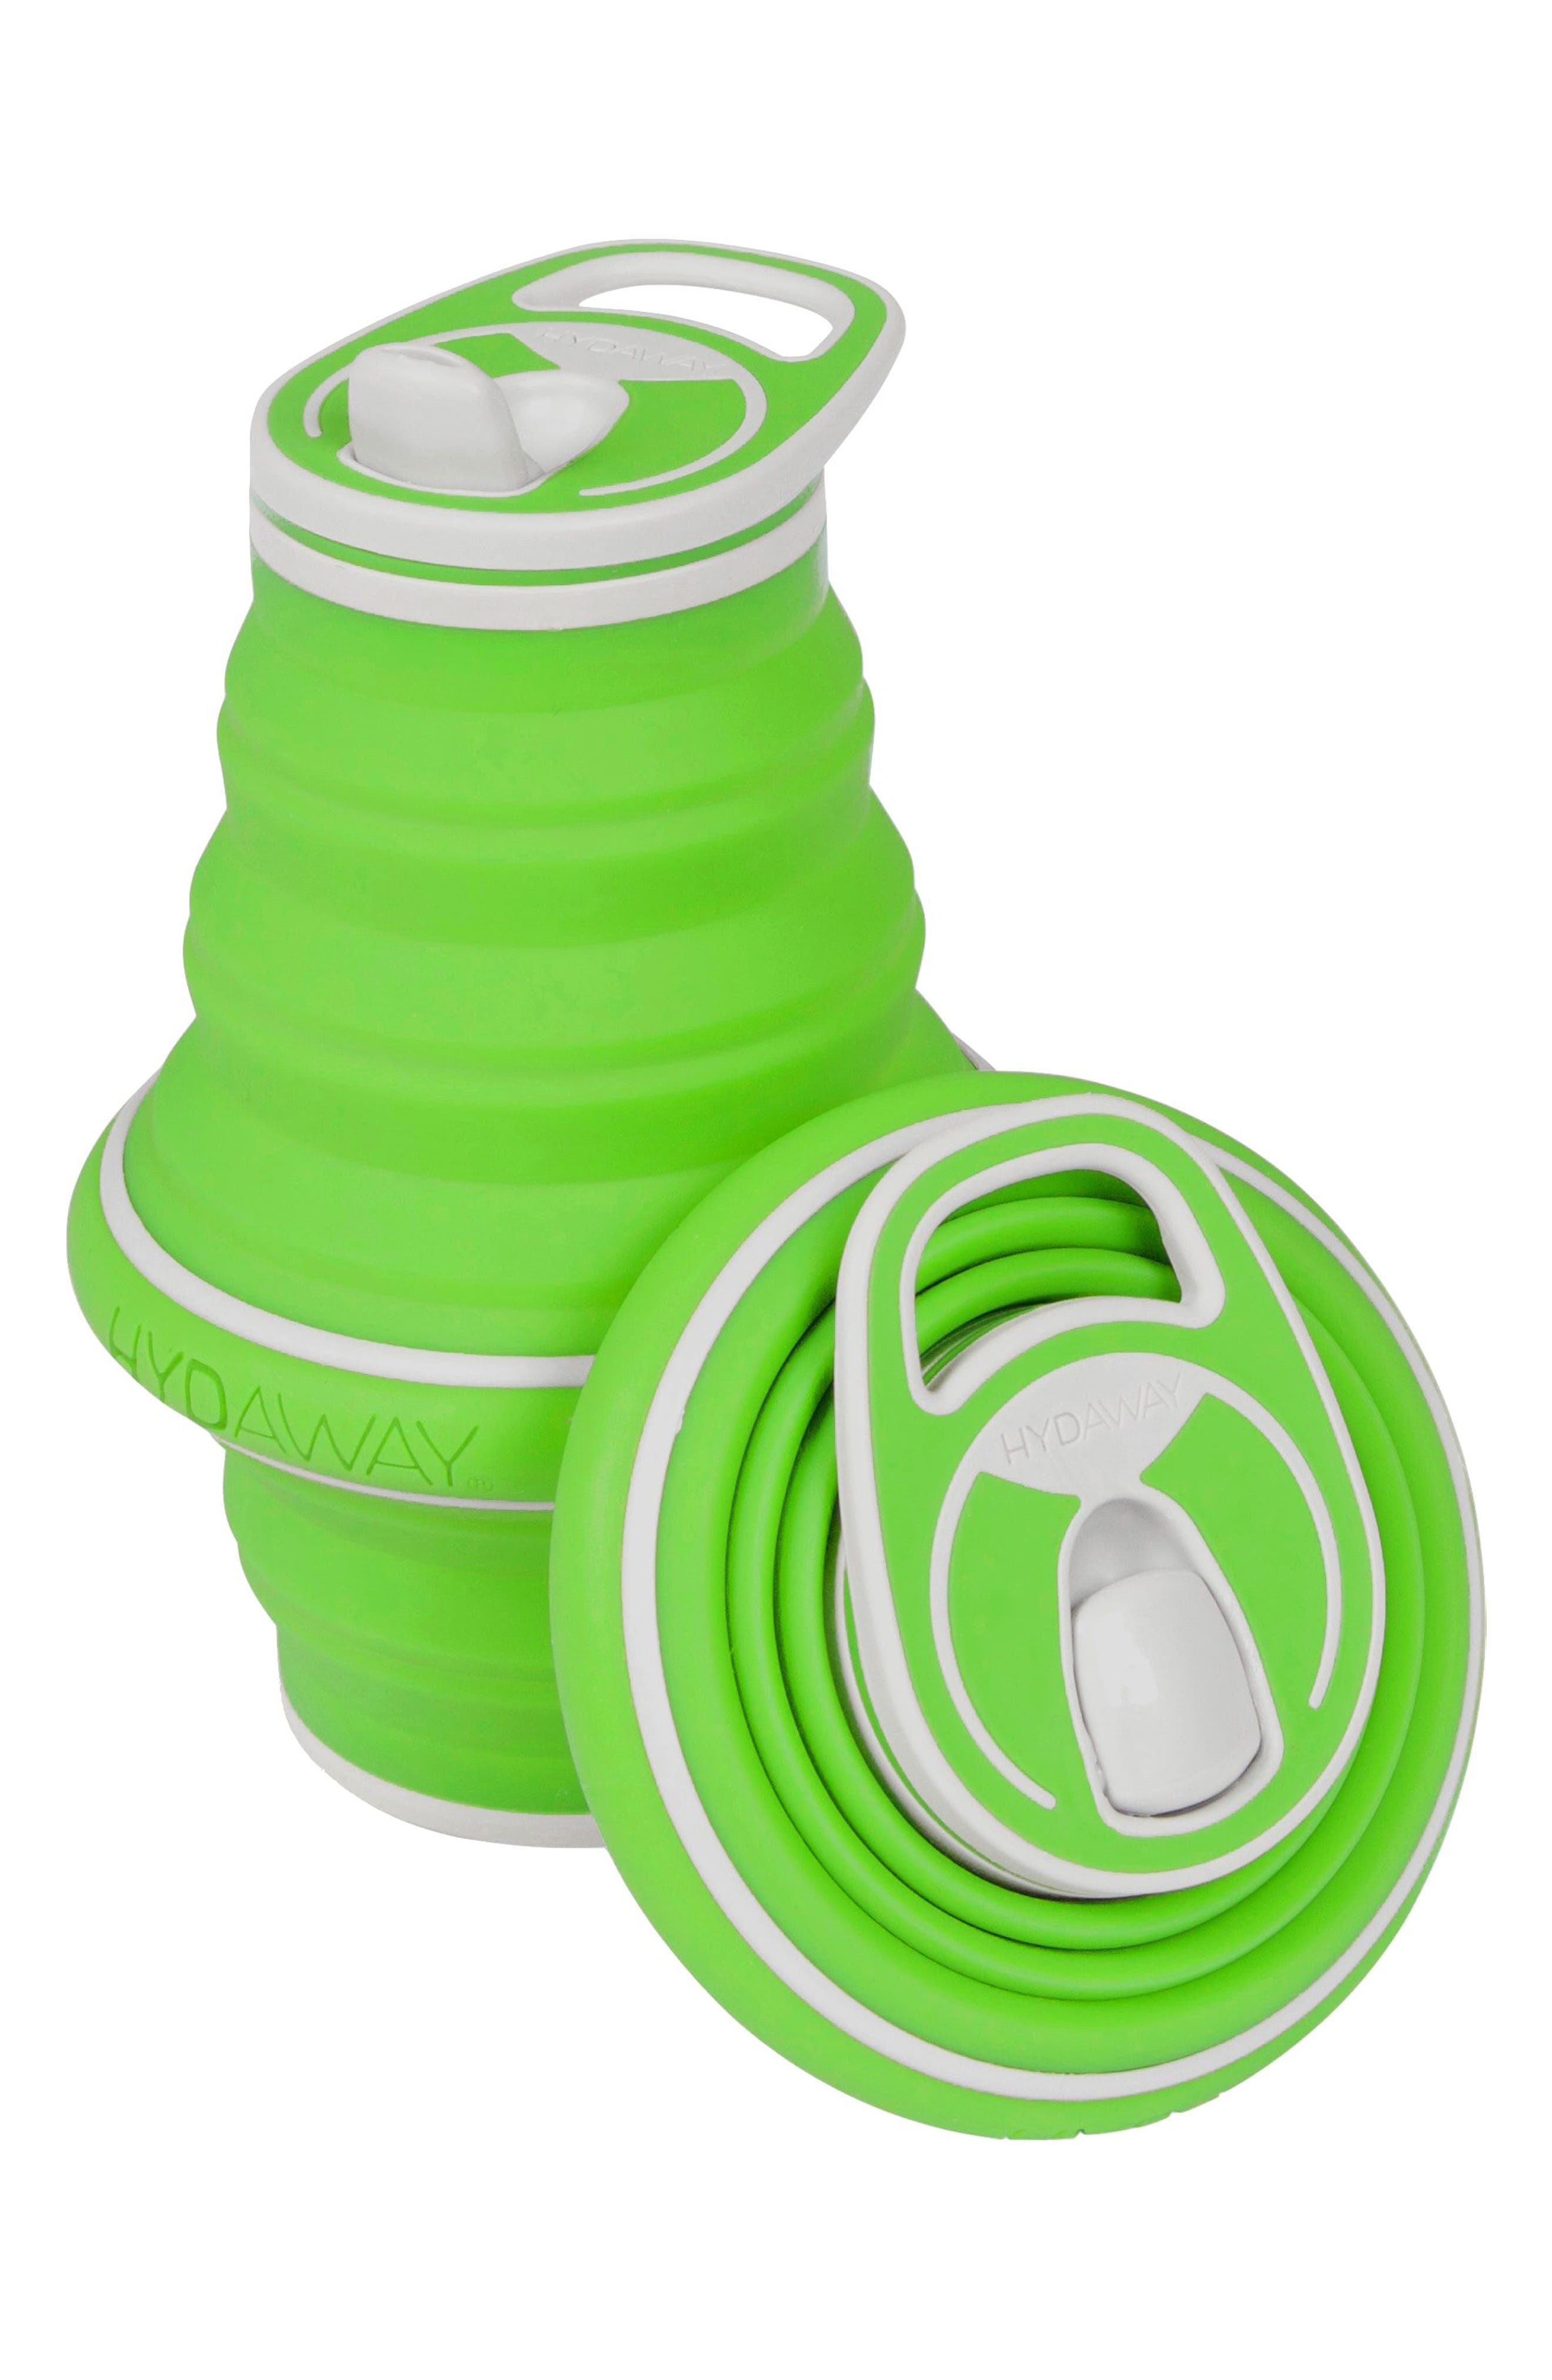 Main Image - Hydaway Collapsible Bottle